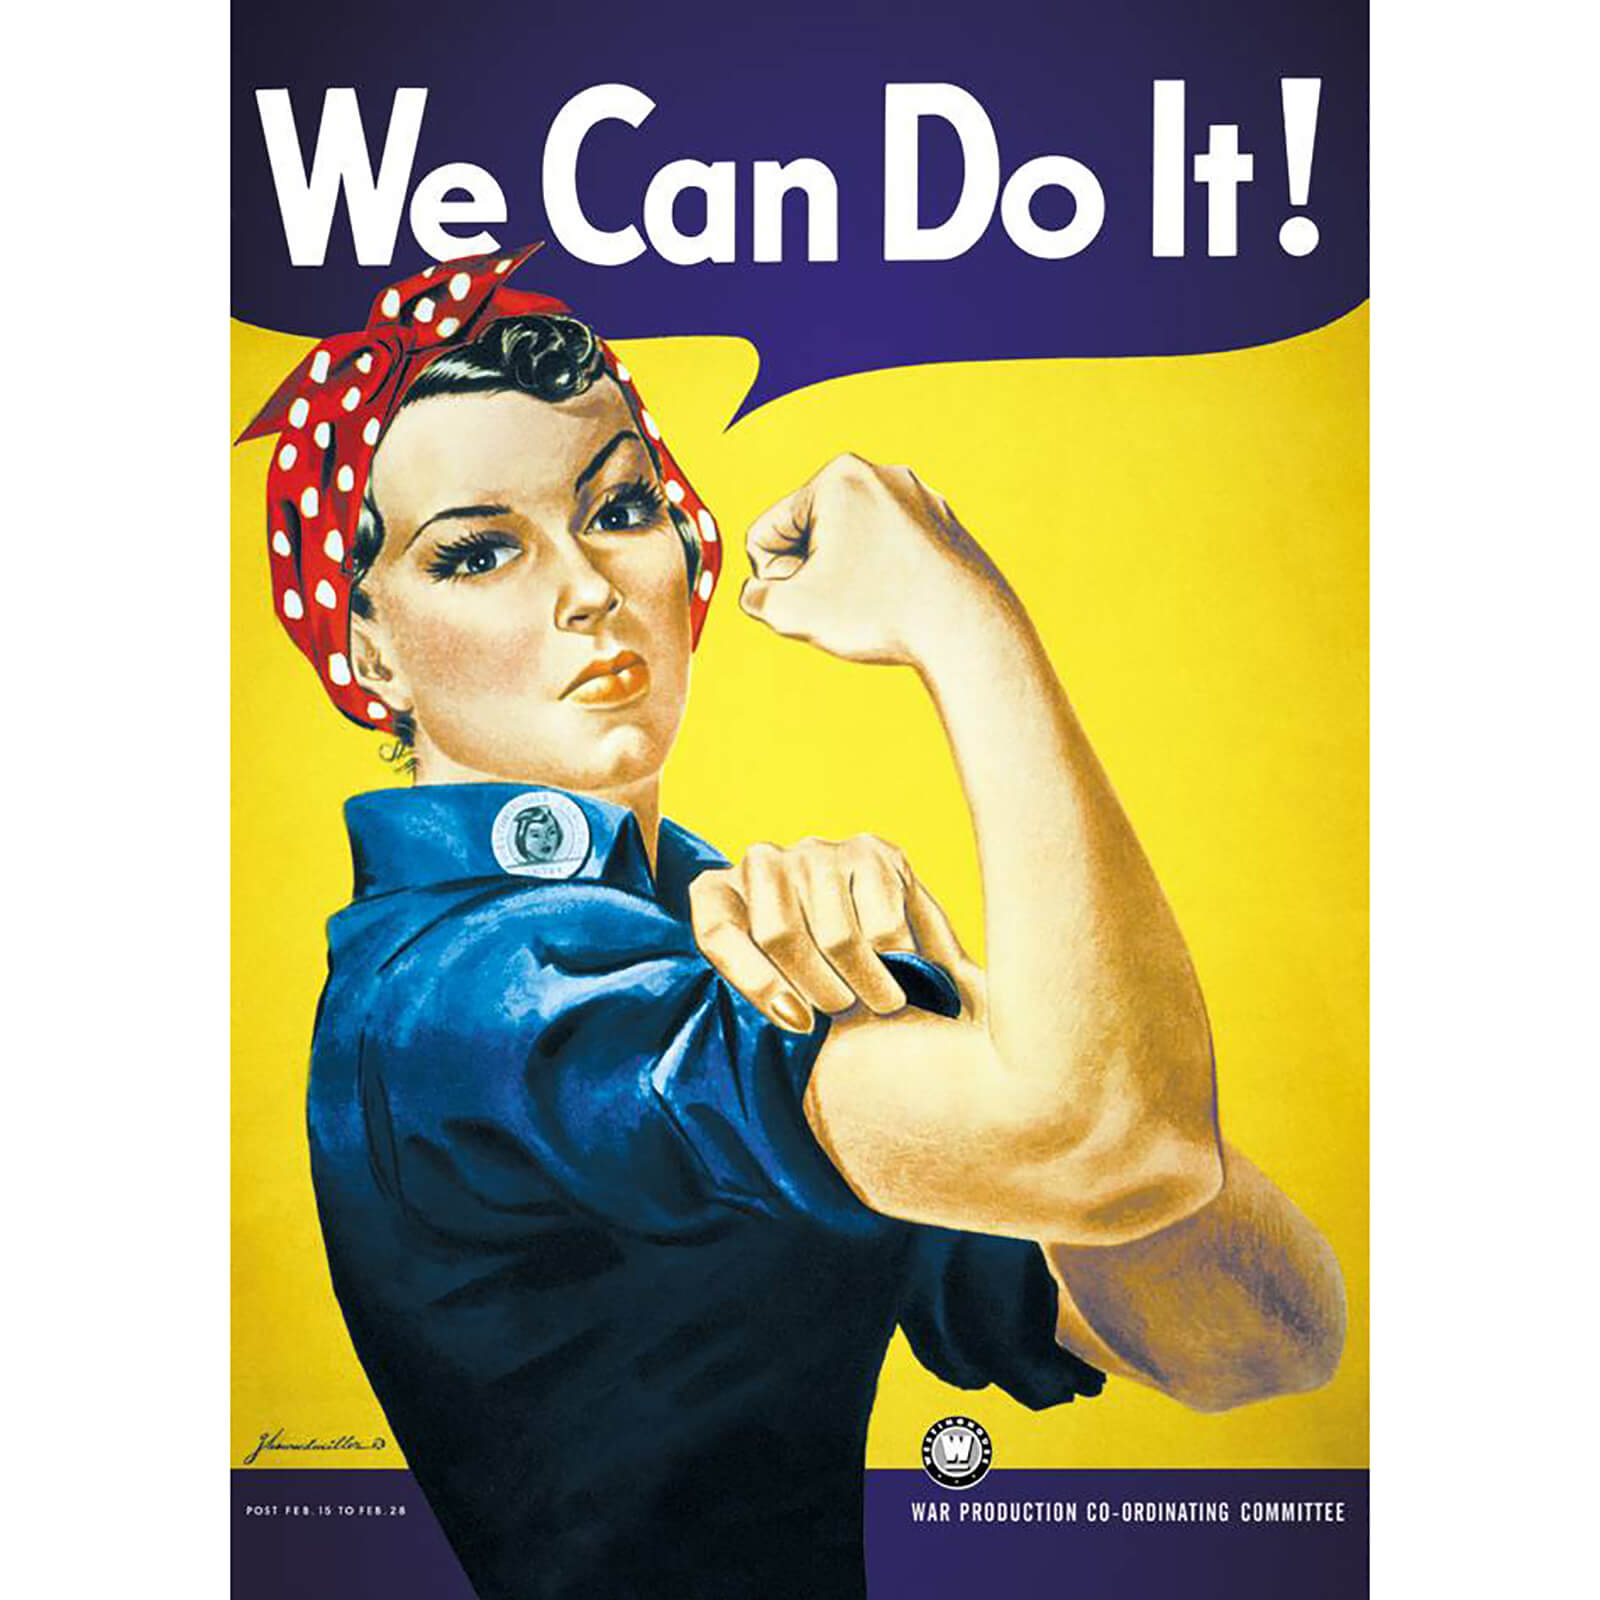 We Can Do It - 61 x 91.5cm Maxi Poster